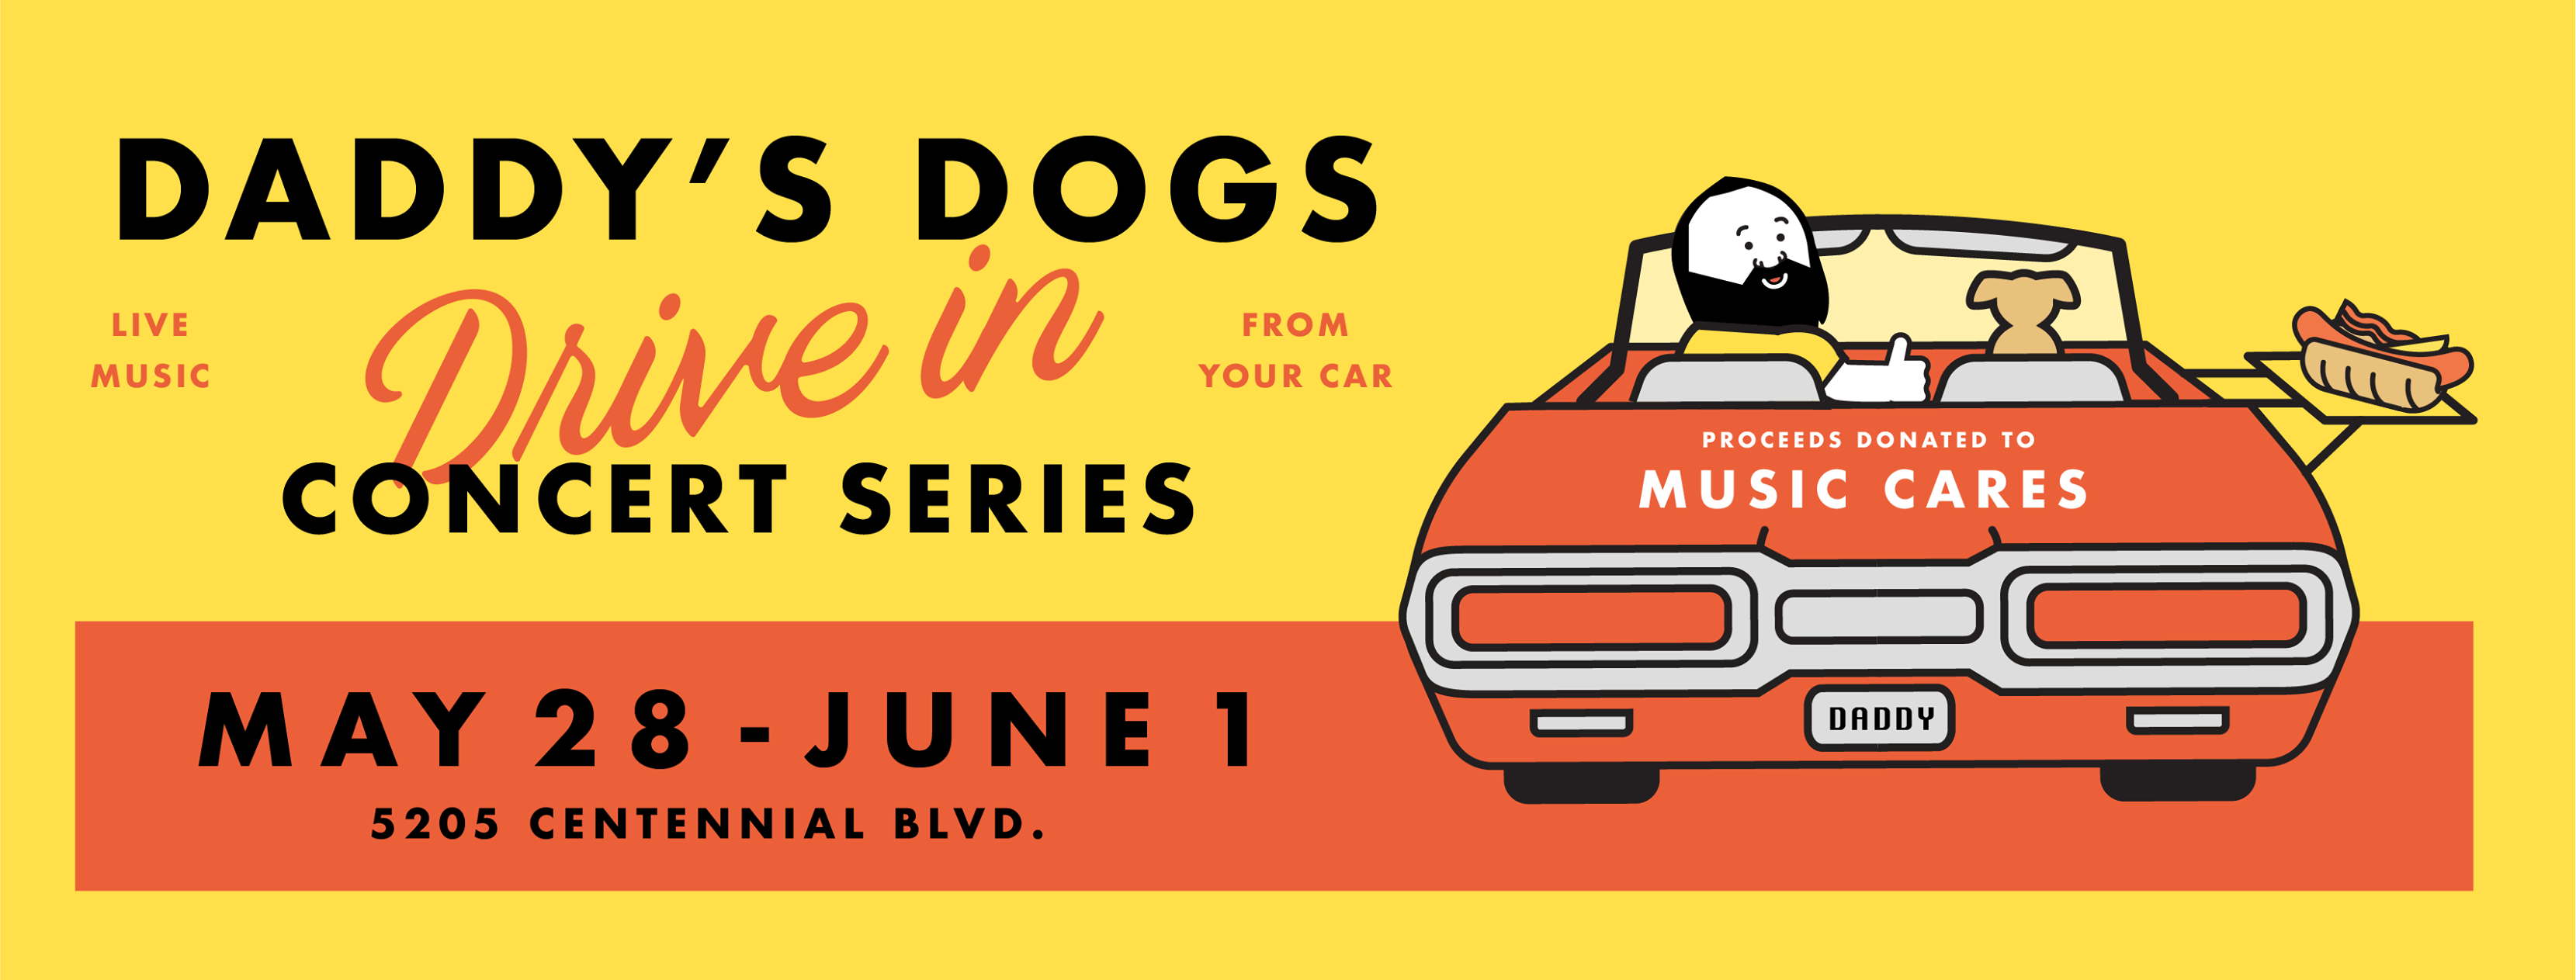 Sean Porter of Daddy's Dogs is hosting a drive-in concert series at the Daddy's Dogs location in the Nations nightly from 8-10 p.m.on Thursday, May 28, through Monday, June 1